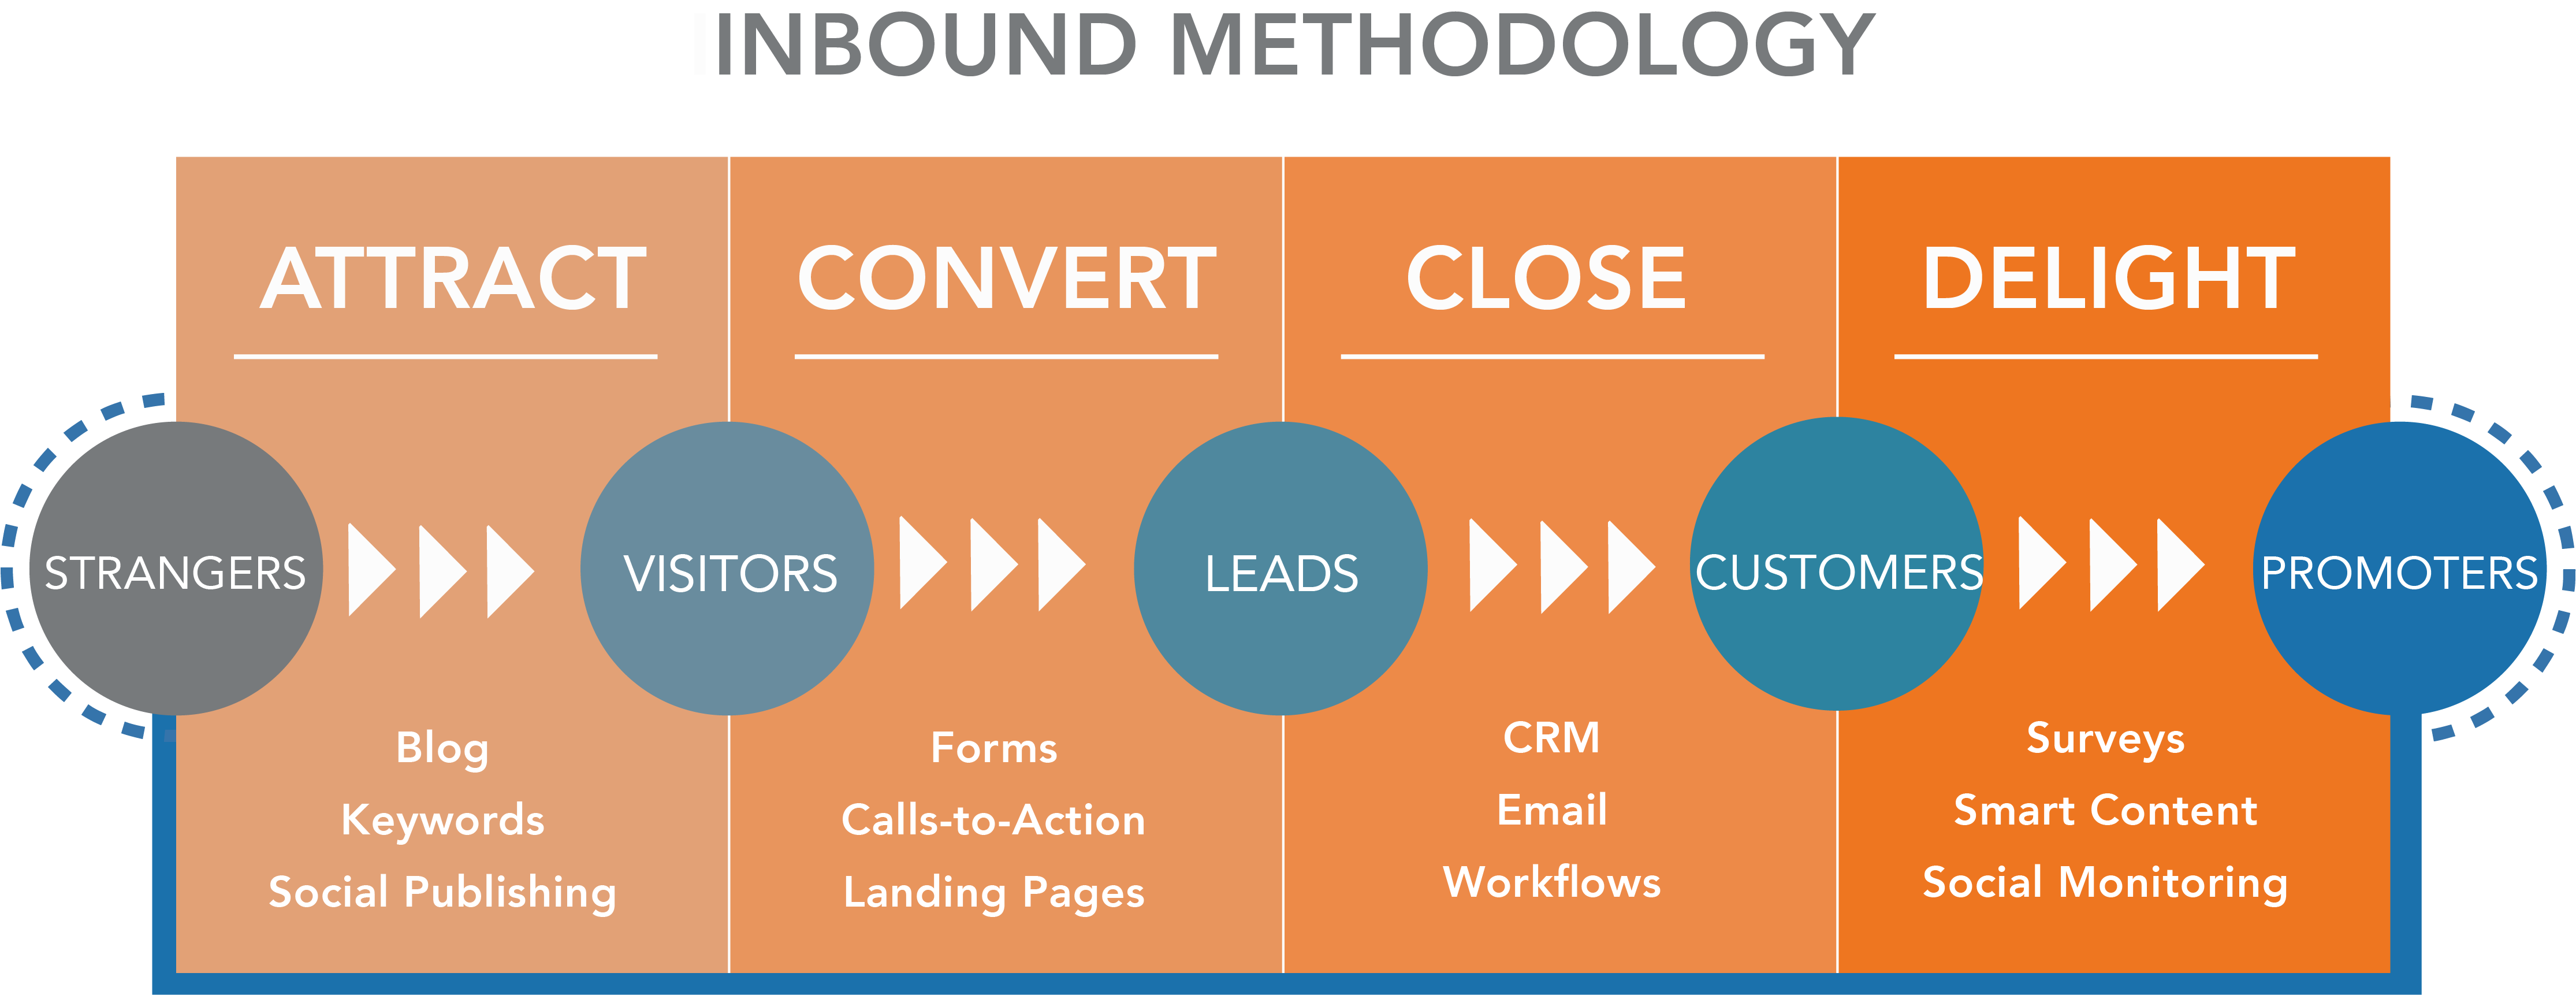 Inbound Methodology Graphic